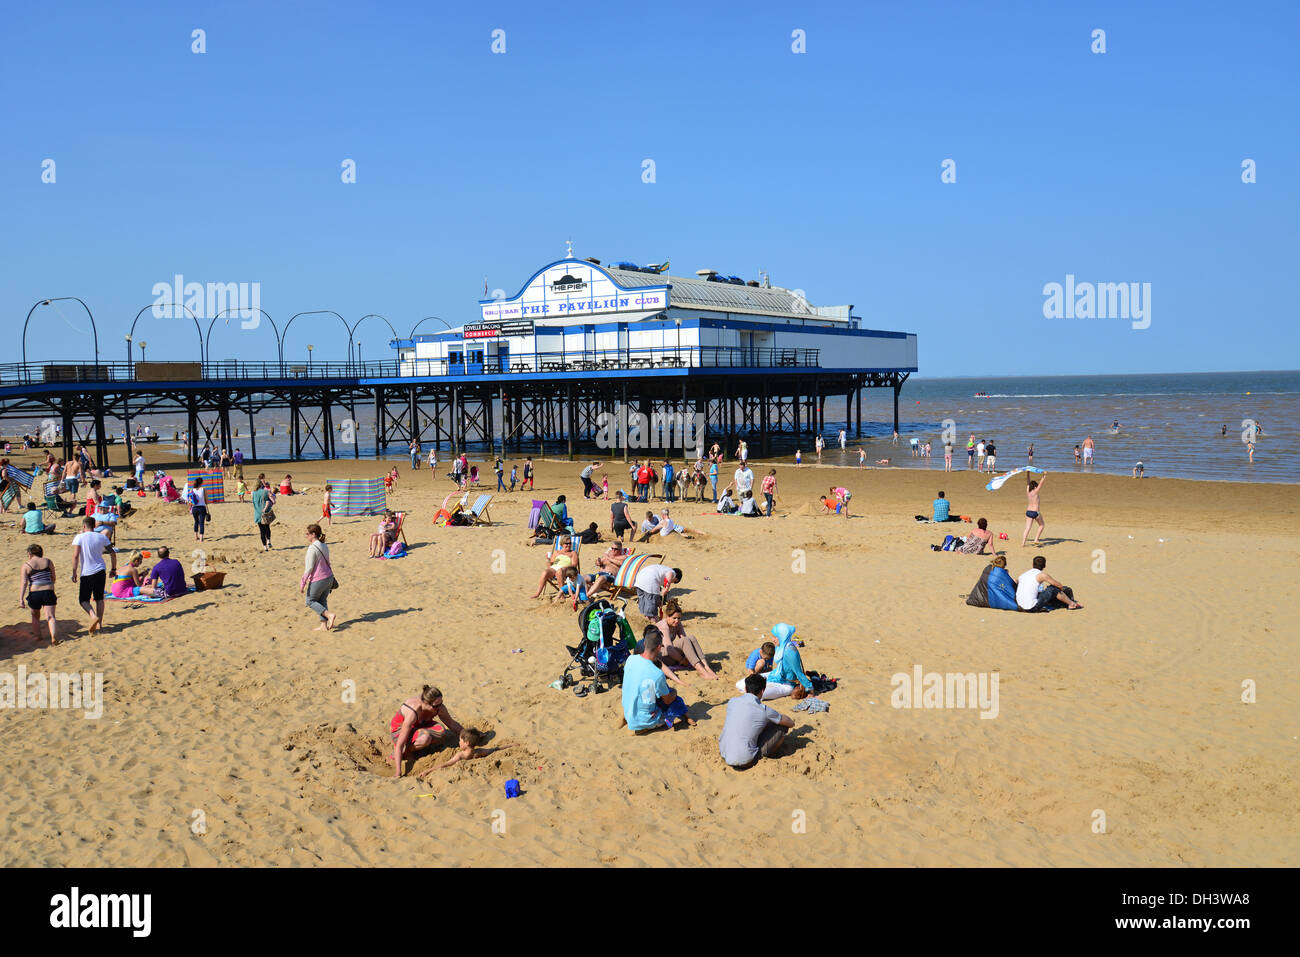 Cleethorpes Beach and Pier, Cleethorpes, Lincolnshire, England, United Kingdom - Stock Image